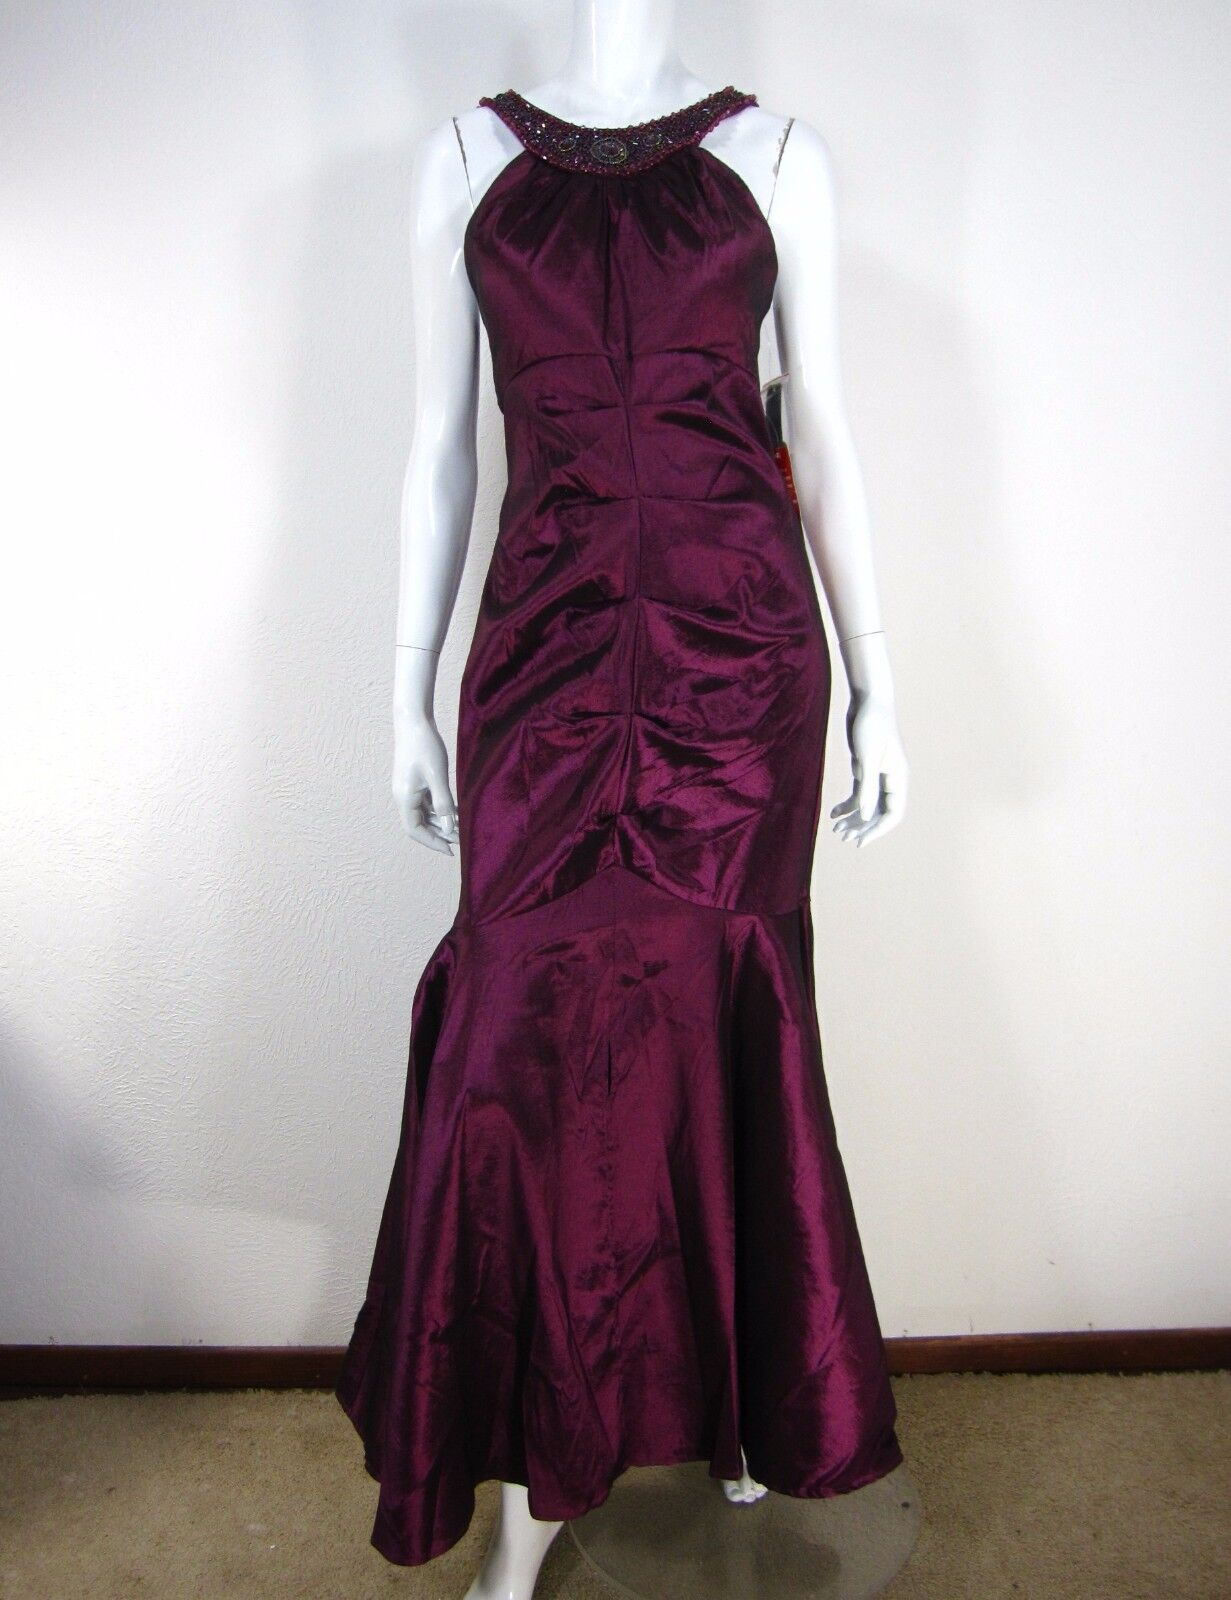 R & M RICHARDS NWT SLEEVELESS HALTER PROM EVENING DRESS Größe 12P RUBY rot